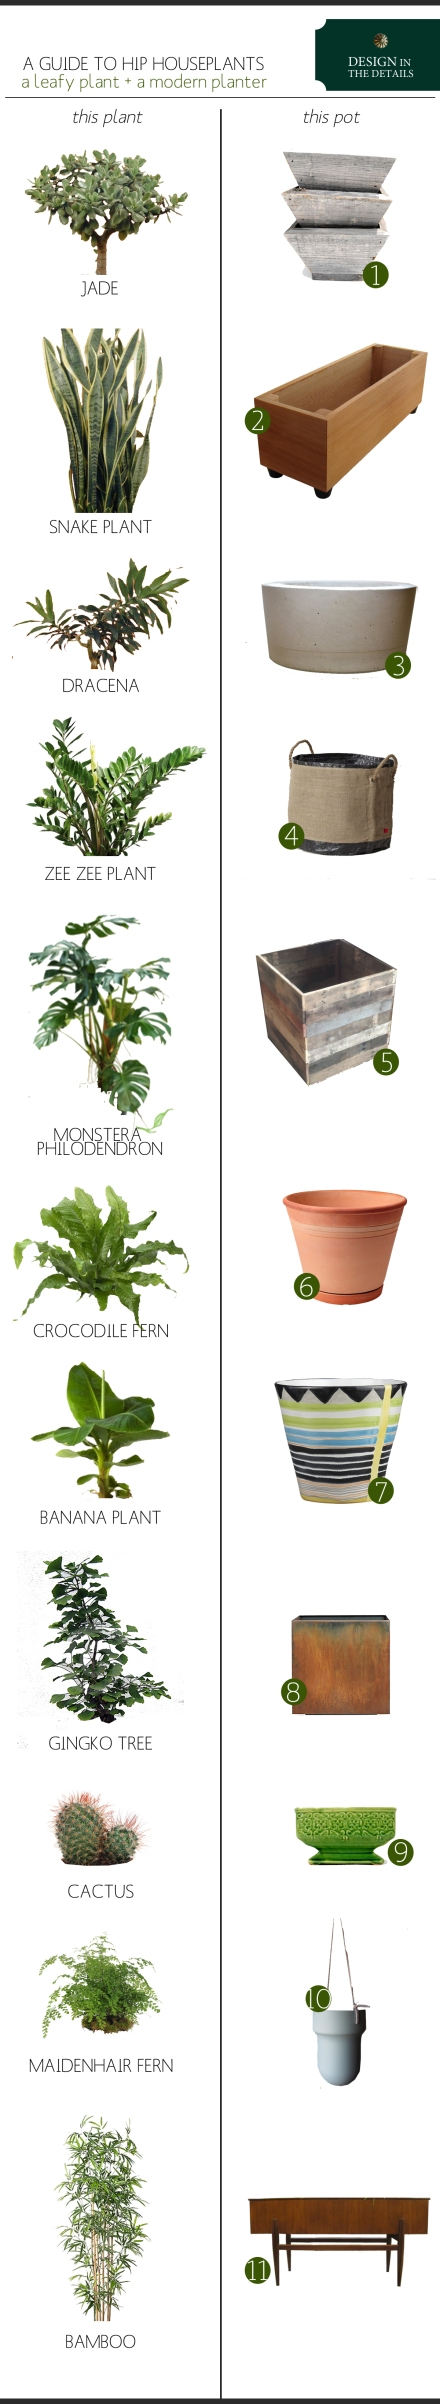 a-guide-to-hip-houseplants copy